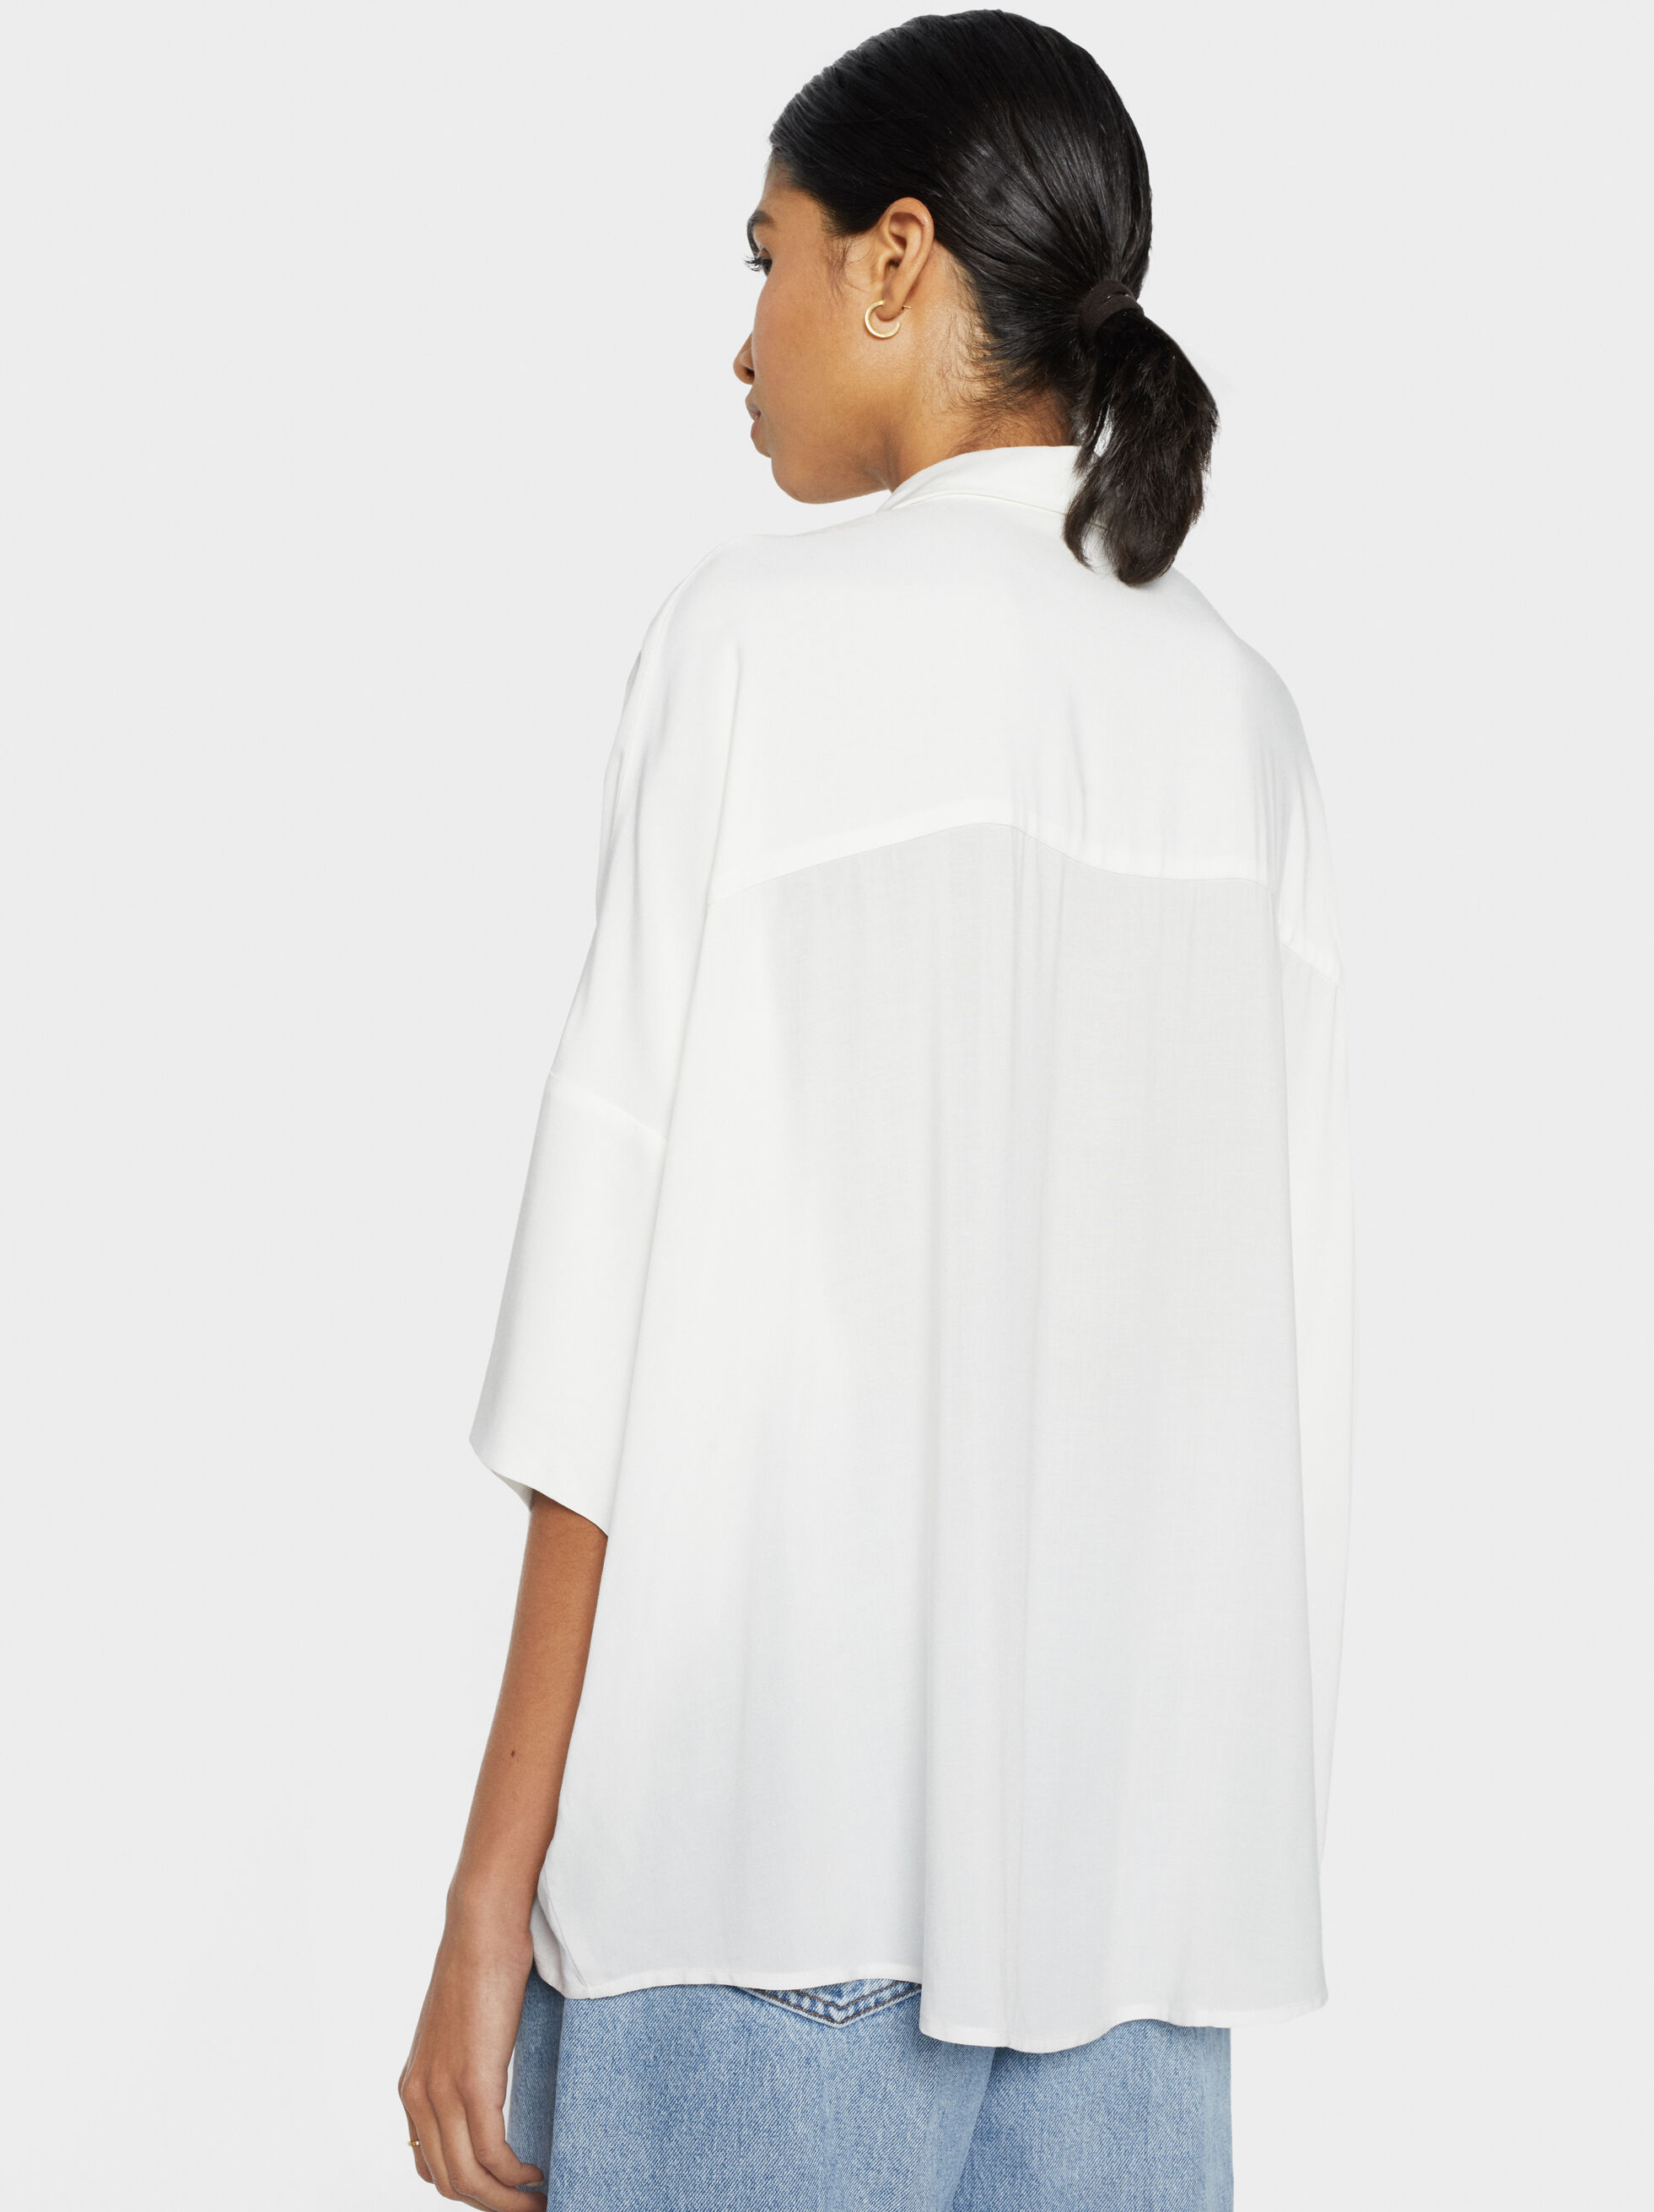 Plain Oversized Shirt, White, hi-res